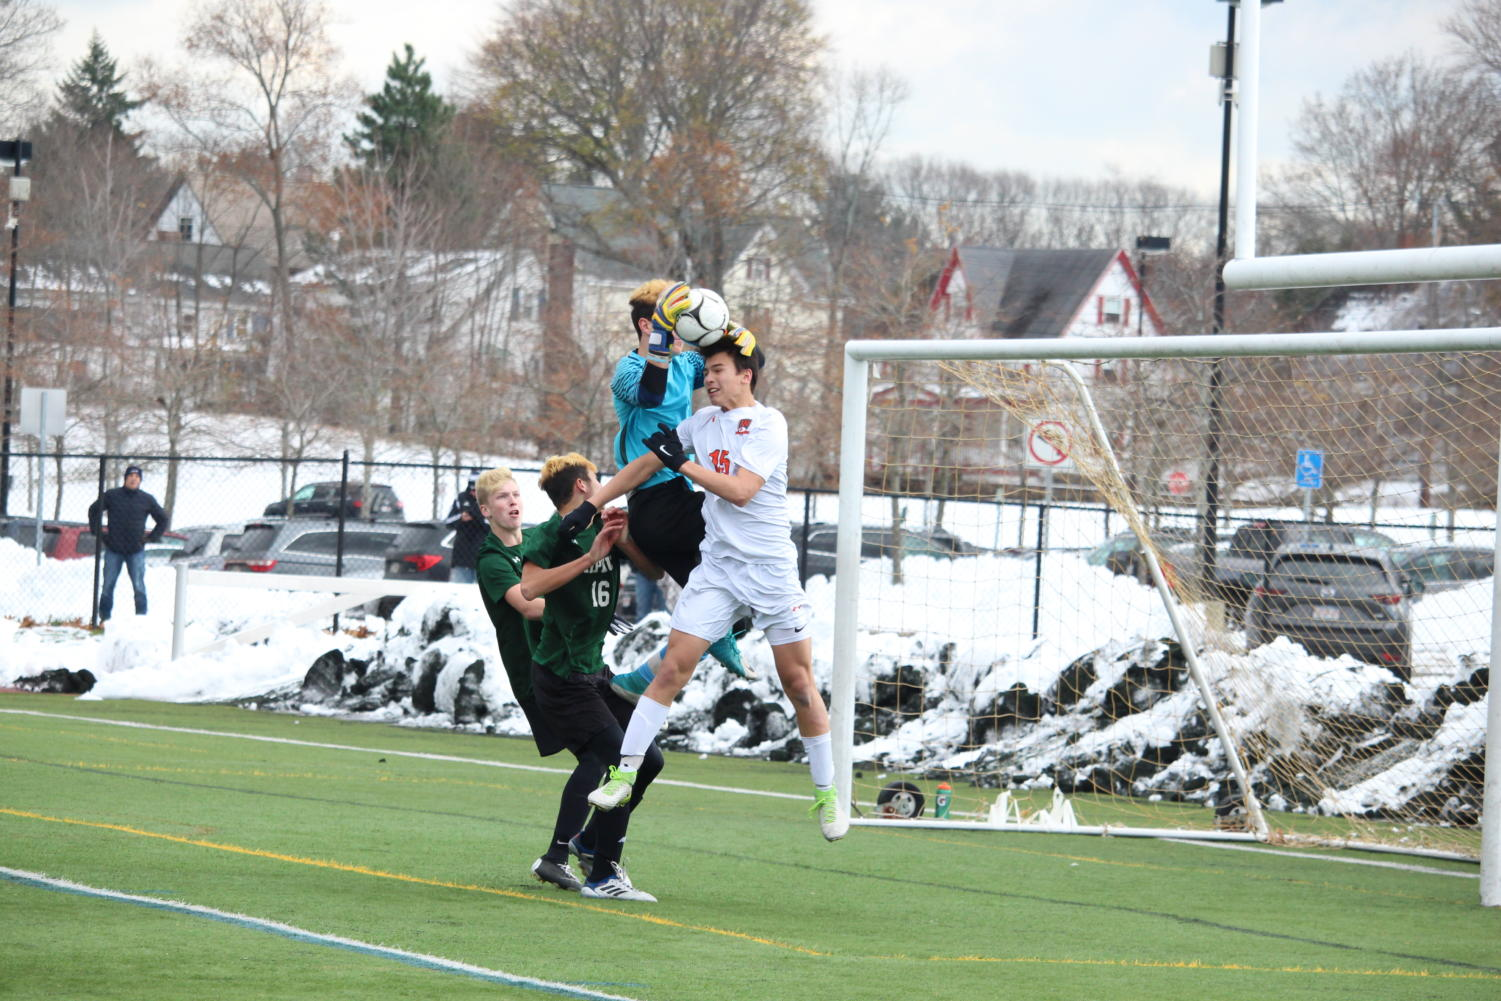 Tyska+attempts+to+head+the+ball+into+the+goal%2C+but+Nipmuc+goalie+Colby+Hegarty+snatches+the+ball+from+the+air.